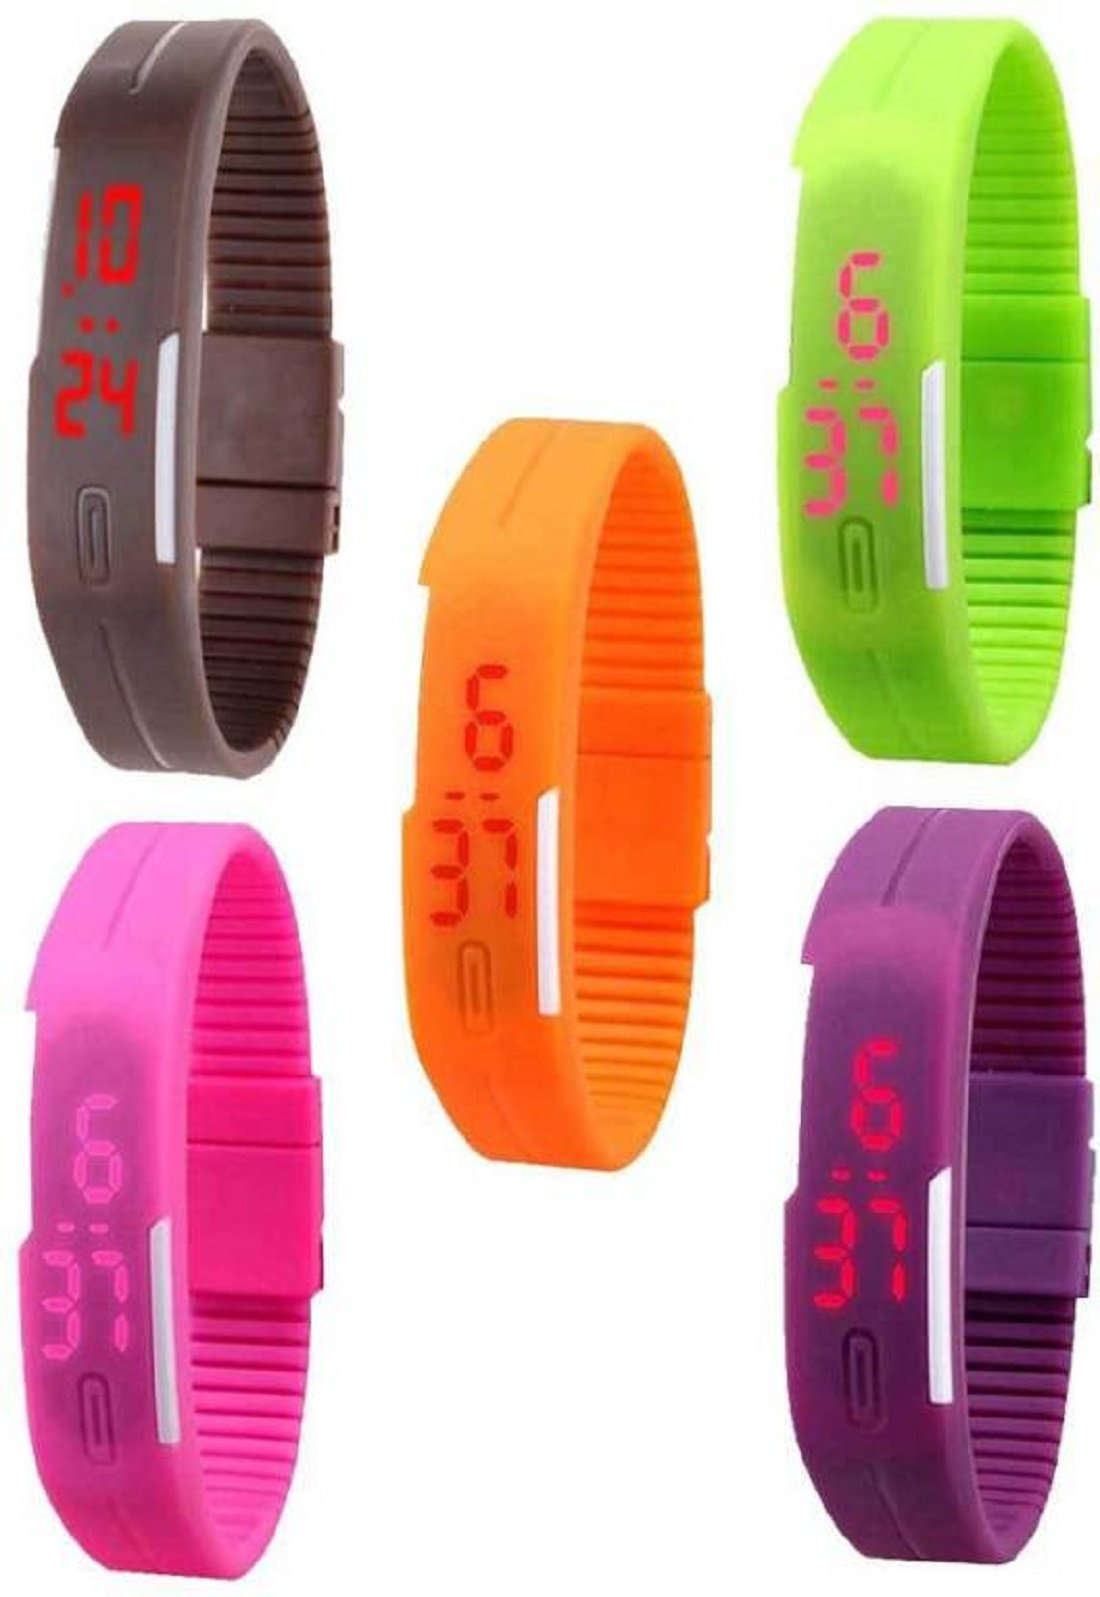 TESLO Digital Dial Slim & Led Bracelet Watch for Boys and Girls – Pack Of 5 (Multicolour)